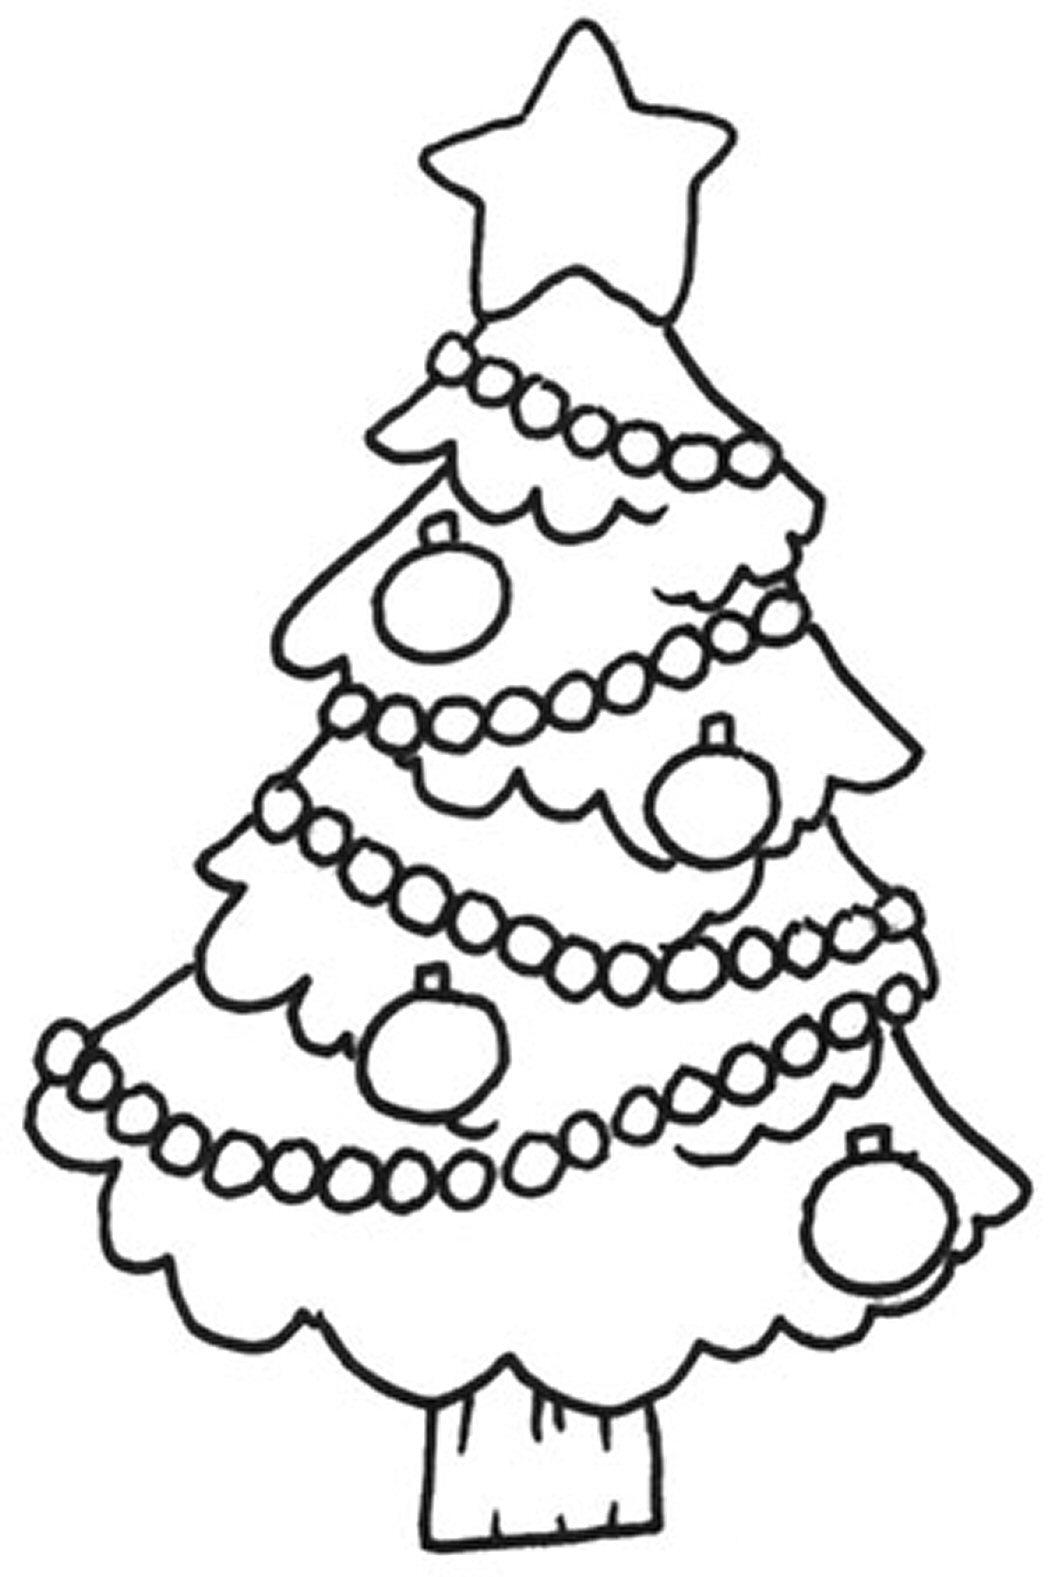 coloring christmas printables top 10 free printable christmas ornament coloring pages online coloring christmas printables